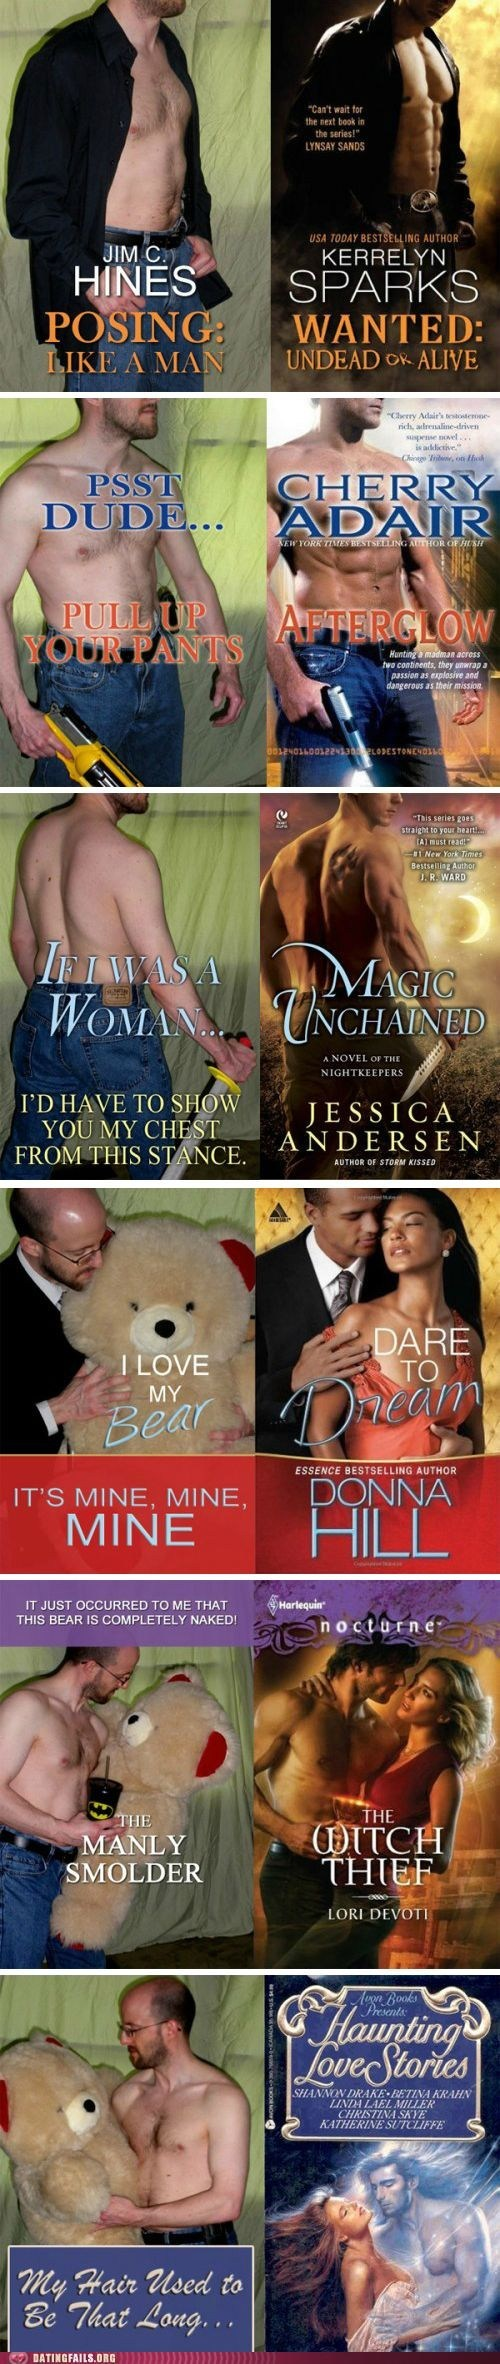 novel covers,parodies,posing like a man,romance novels